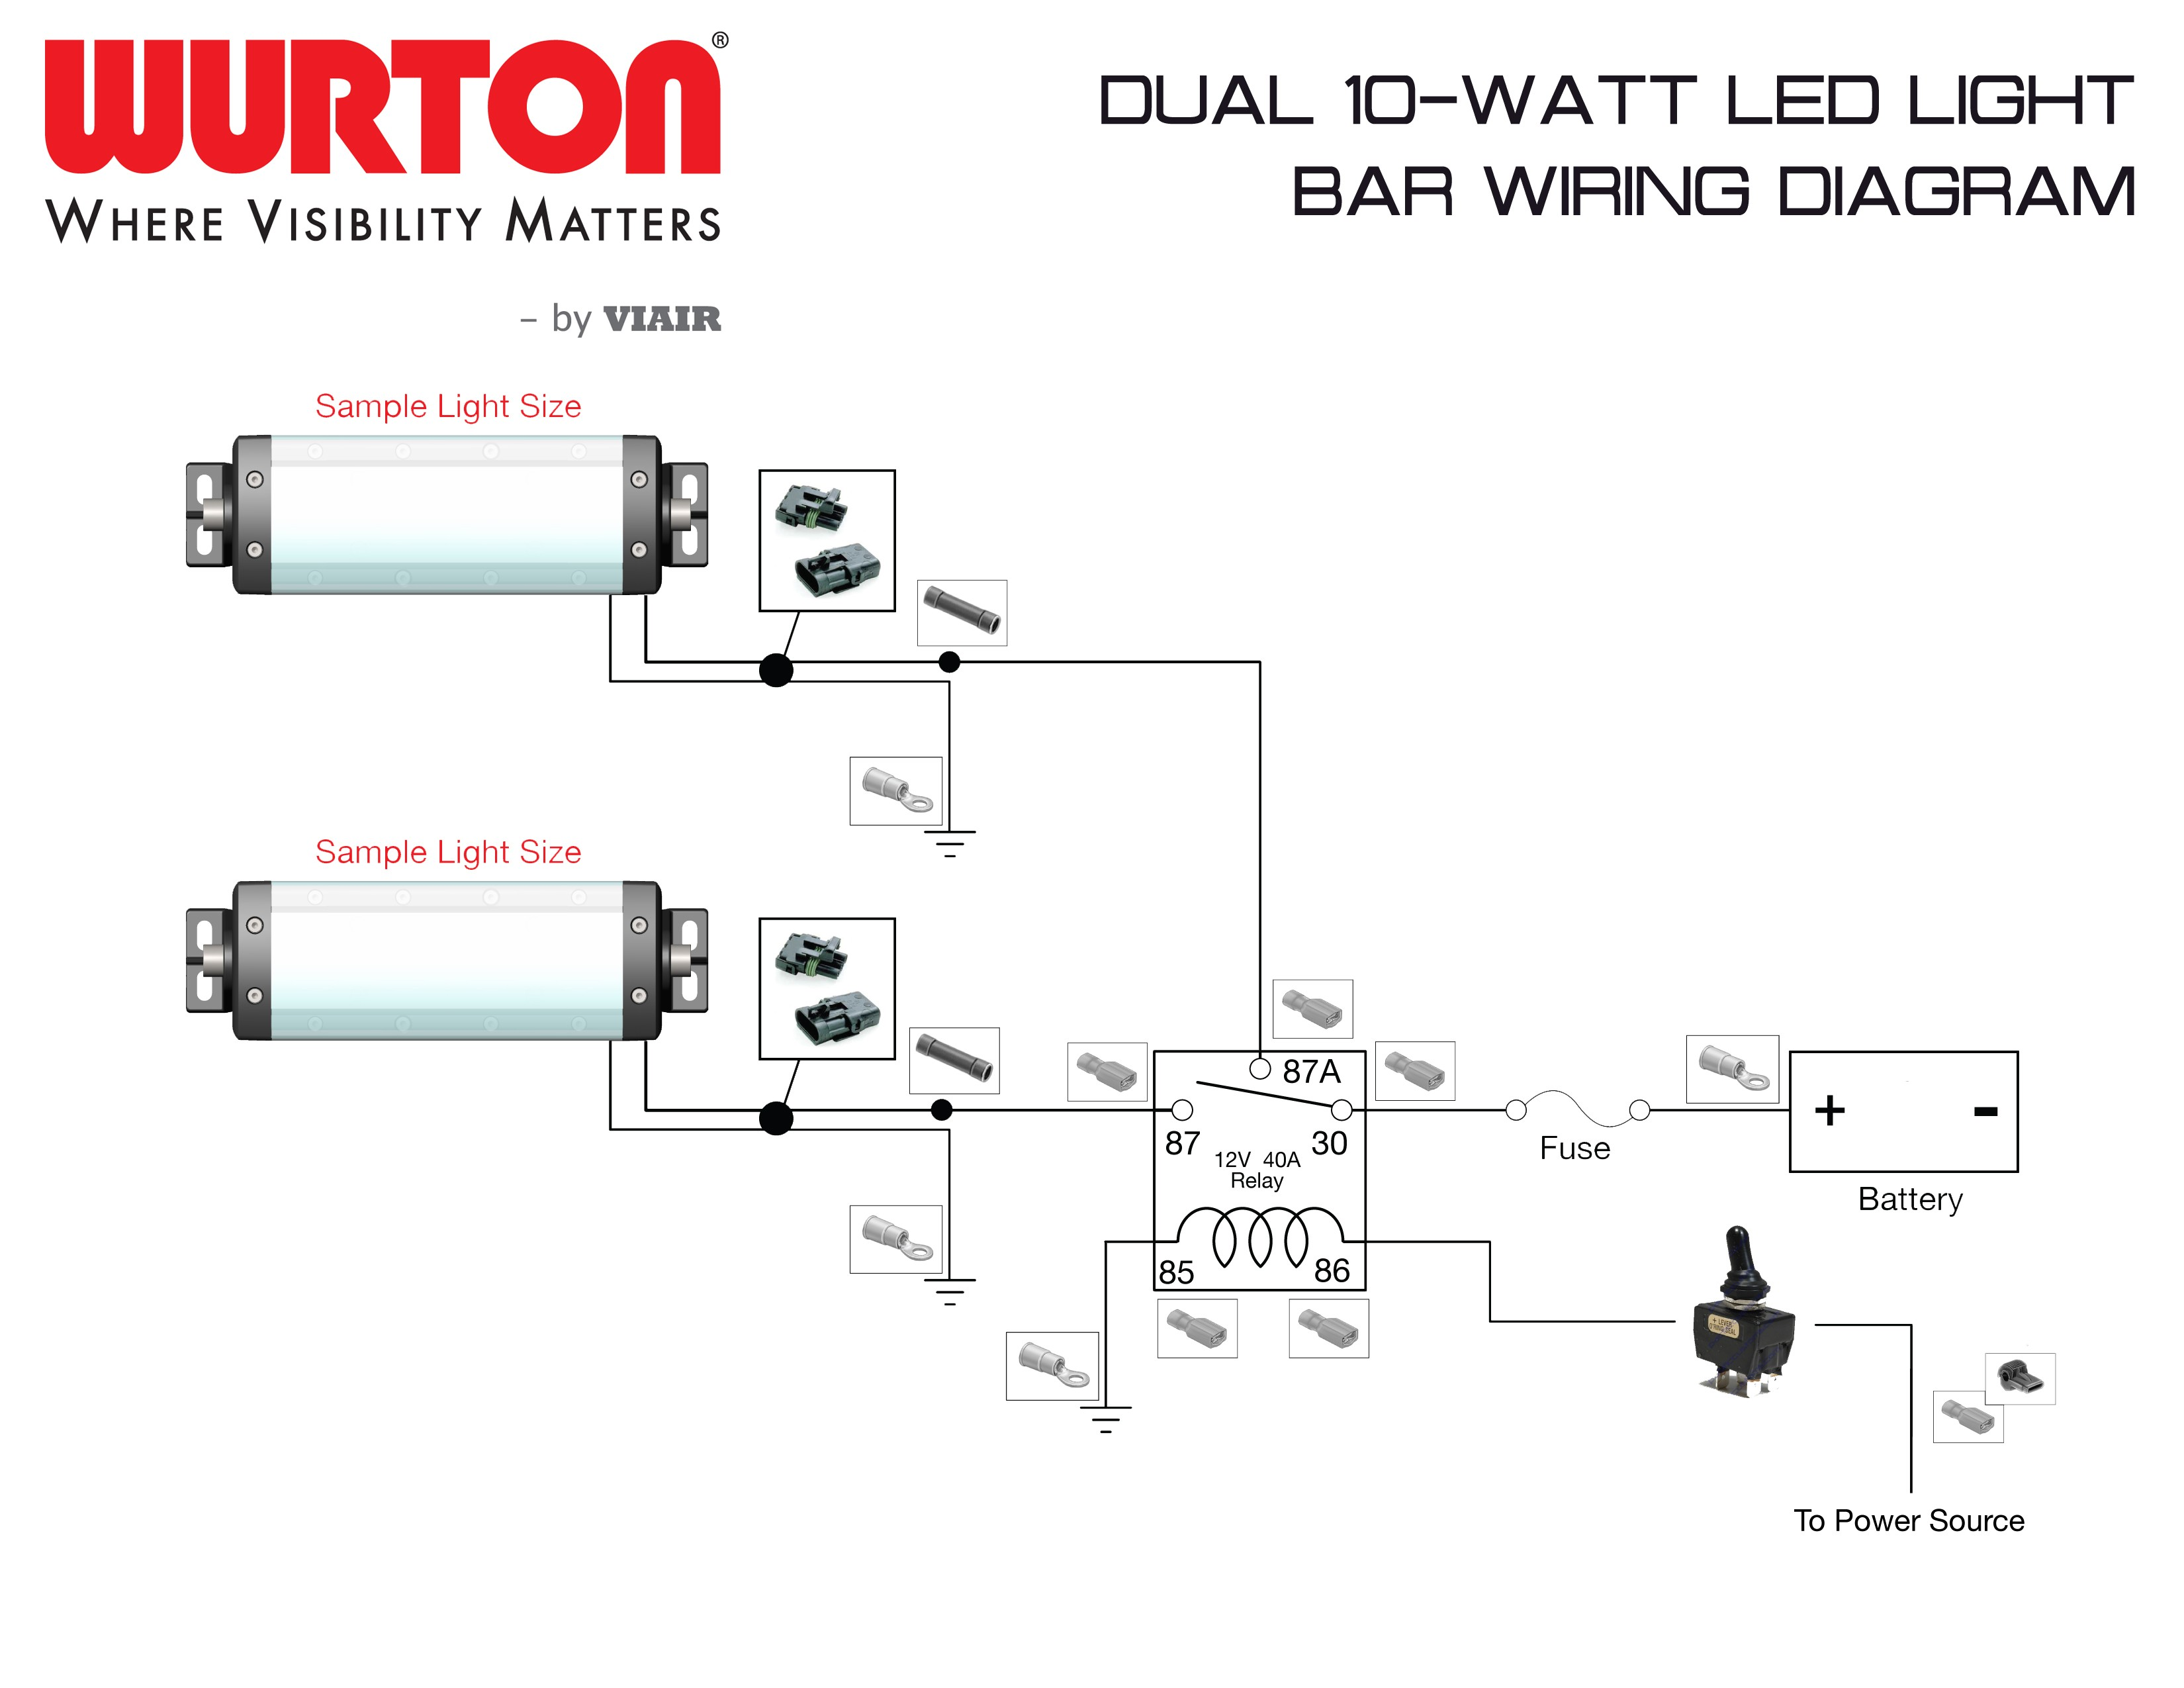 Wiring Diagrams Wurton froad Led Lighting At Light Bar Wire Diagram With Harness